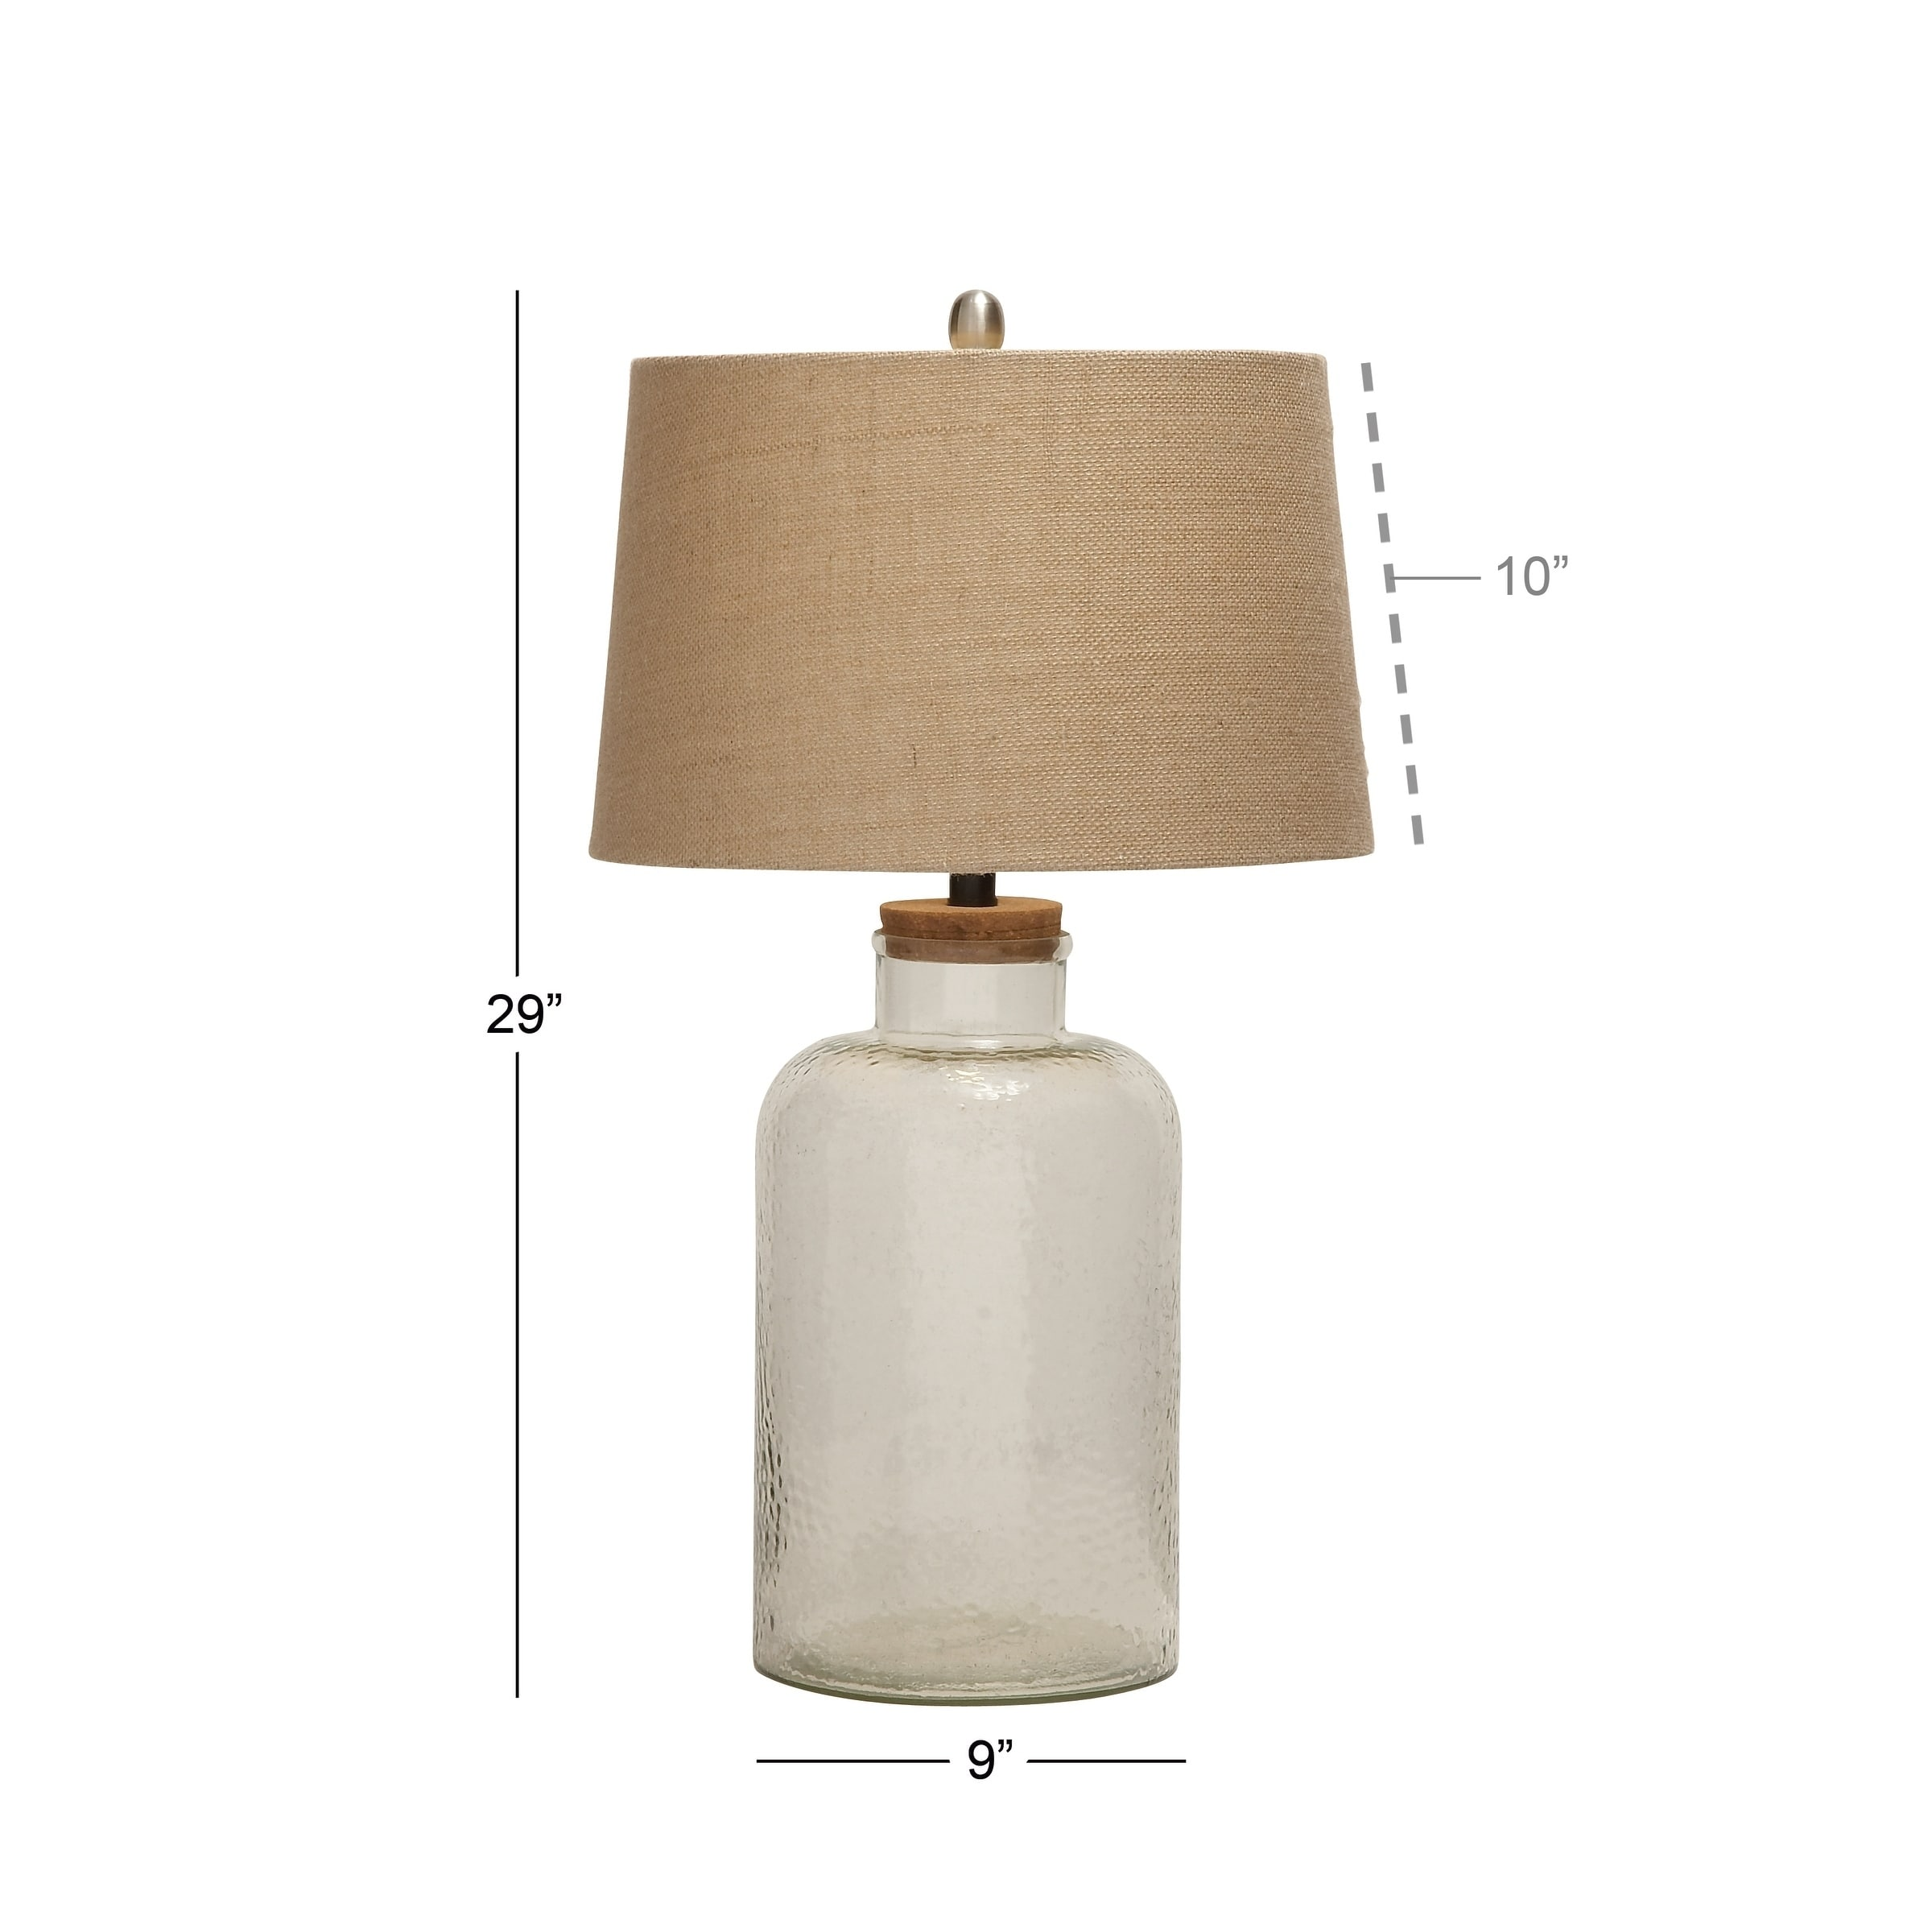 Shop studio 350 set of 2 glass fillable table lamp 29 inches high shop studio 350 set of 2 glass fillable table lamp 29 inches high free shipping today overstock 17338776 aloadofball Image collections